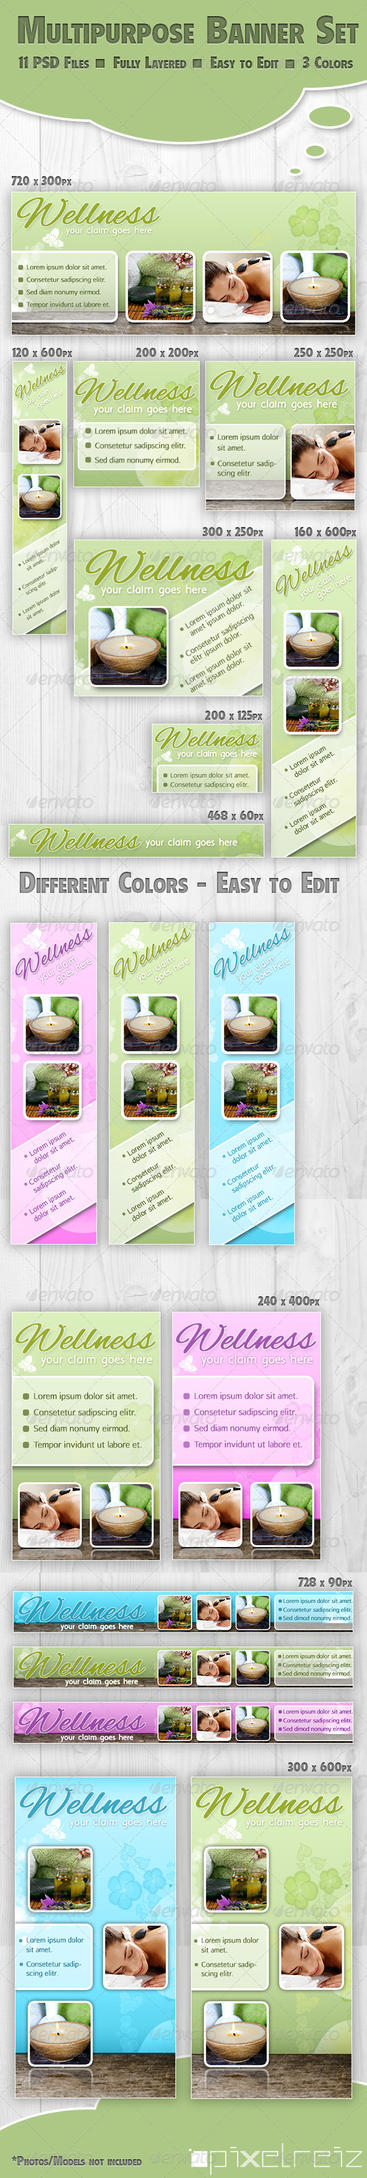 Beautiful Multipurpose Web Banner Set by Pixelreiz